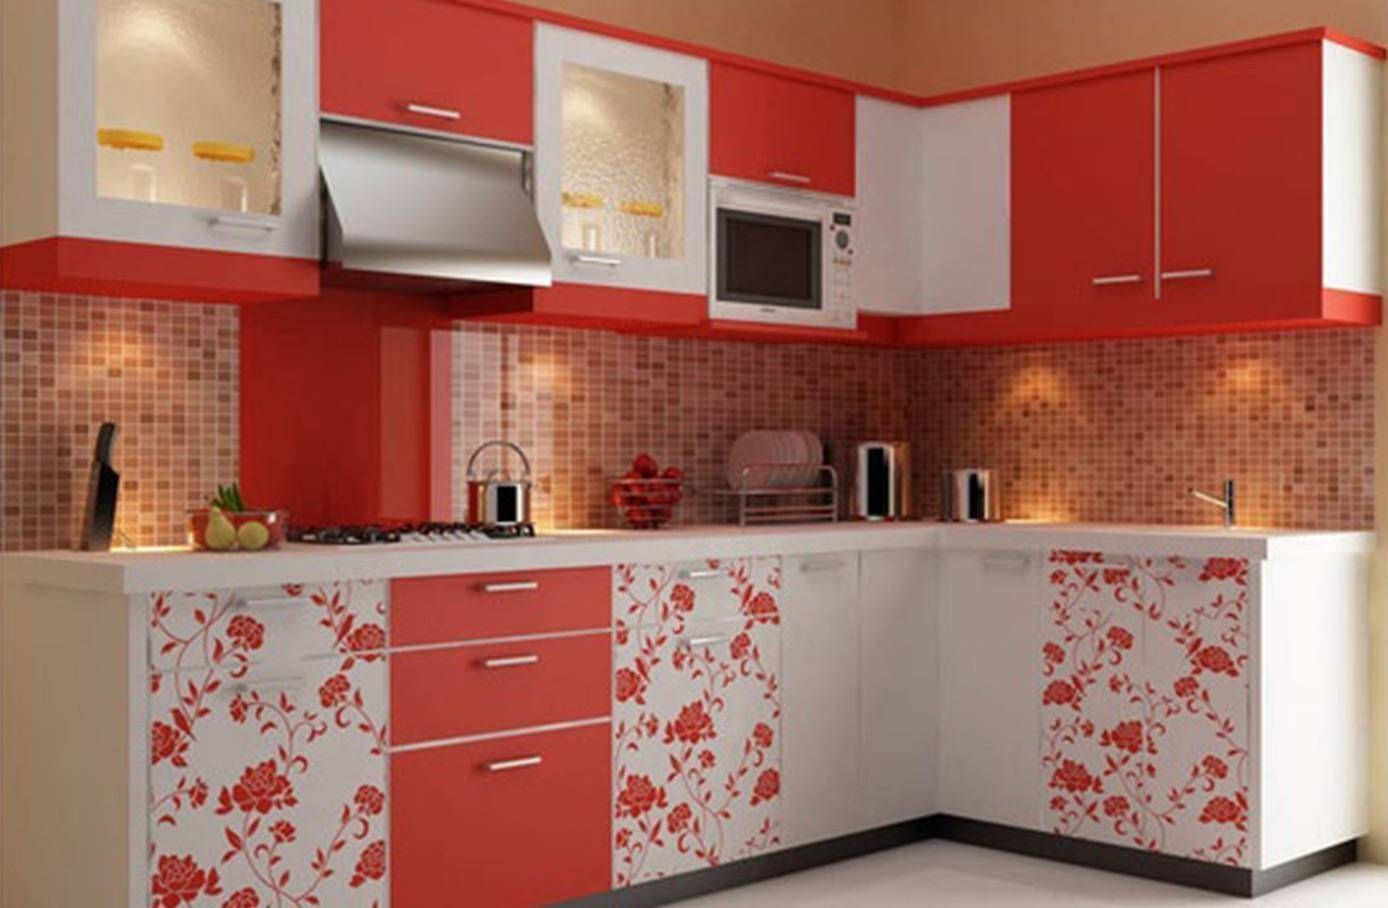 Modular Kitchen Design And Price In Delhimodular Kitchen Design And Price In Del Kitchen Furniture Design Trendy Kitchen Backsplash Kitchen Tiles Design